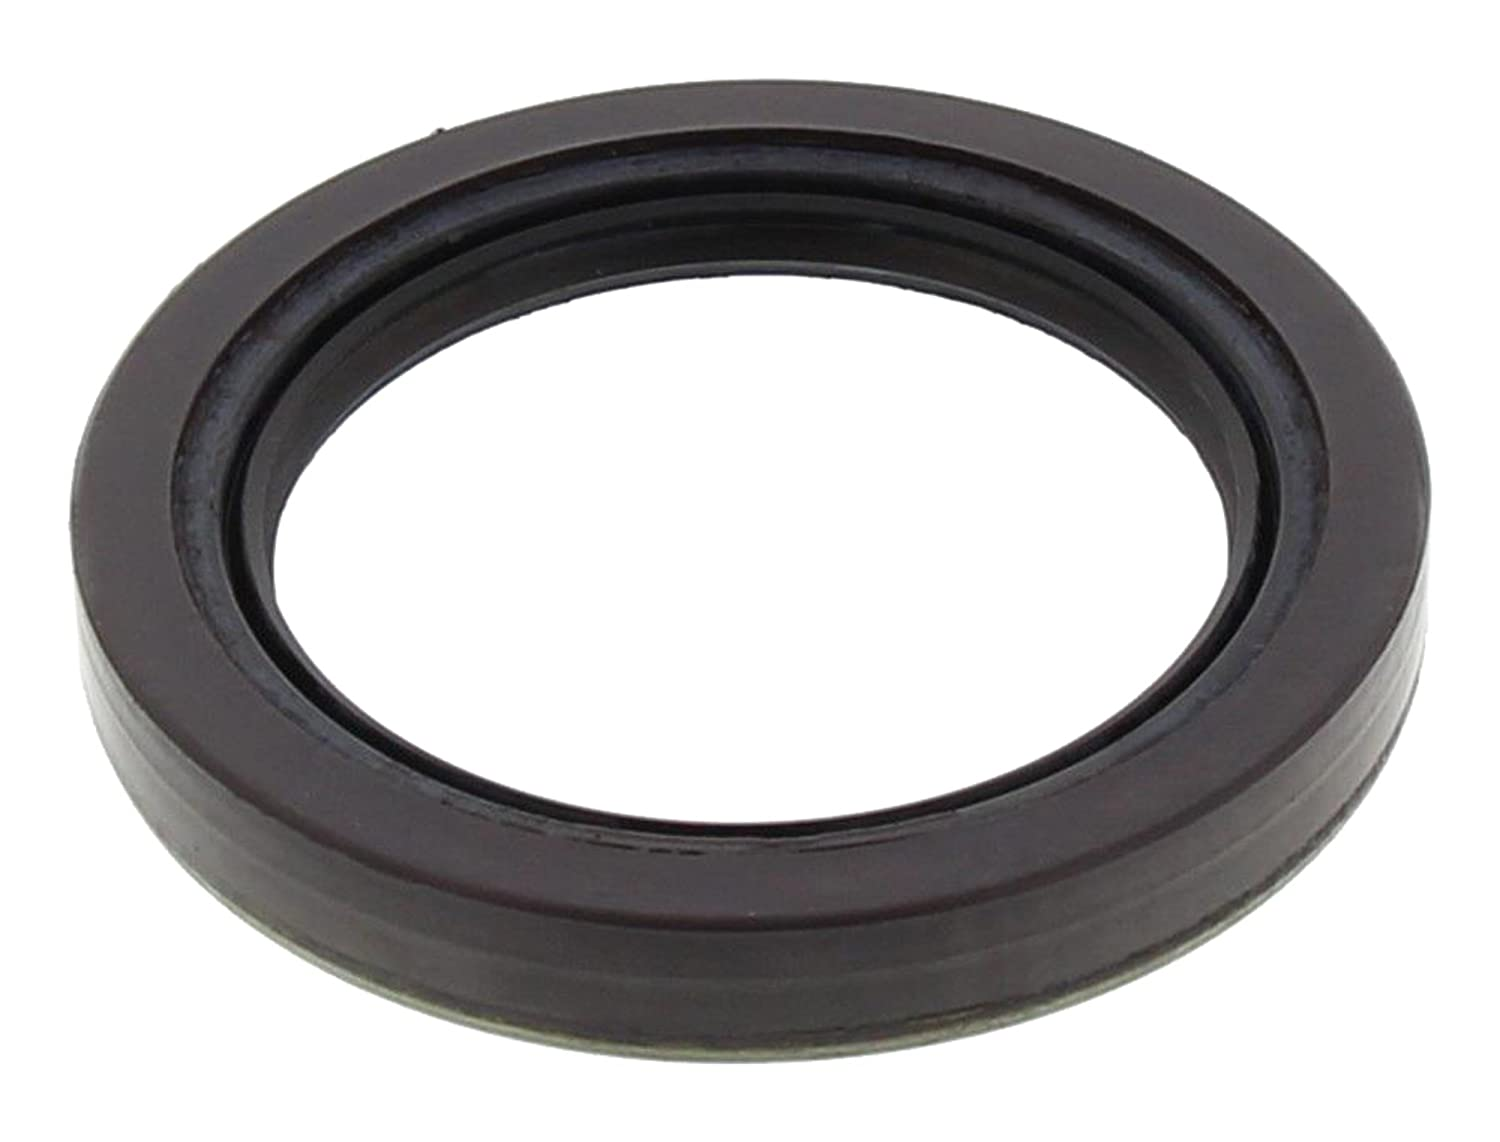 Mapco 76850 ABS Sensor Ring